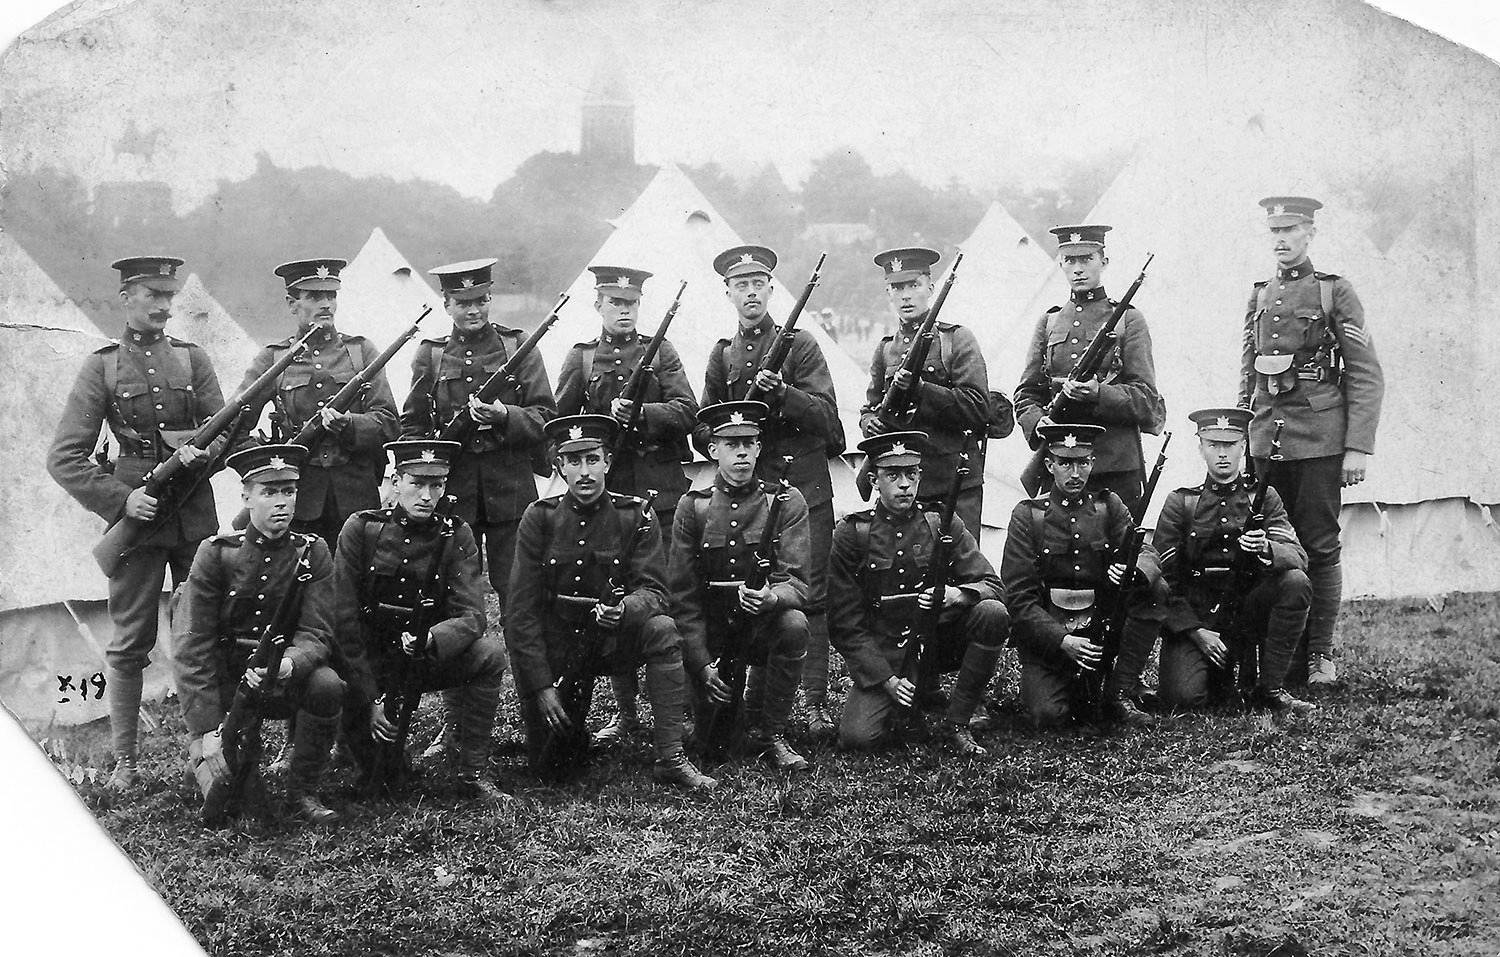 Looking considerably more martial is this group of finely turned-out soldiers from Toronto's Queen's Own Rifles, stationed in England before the start of the First World War.